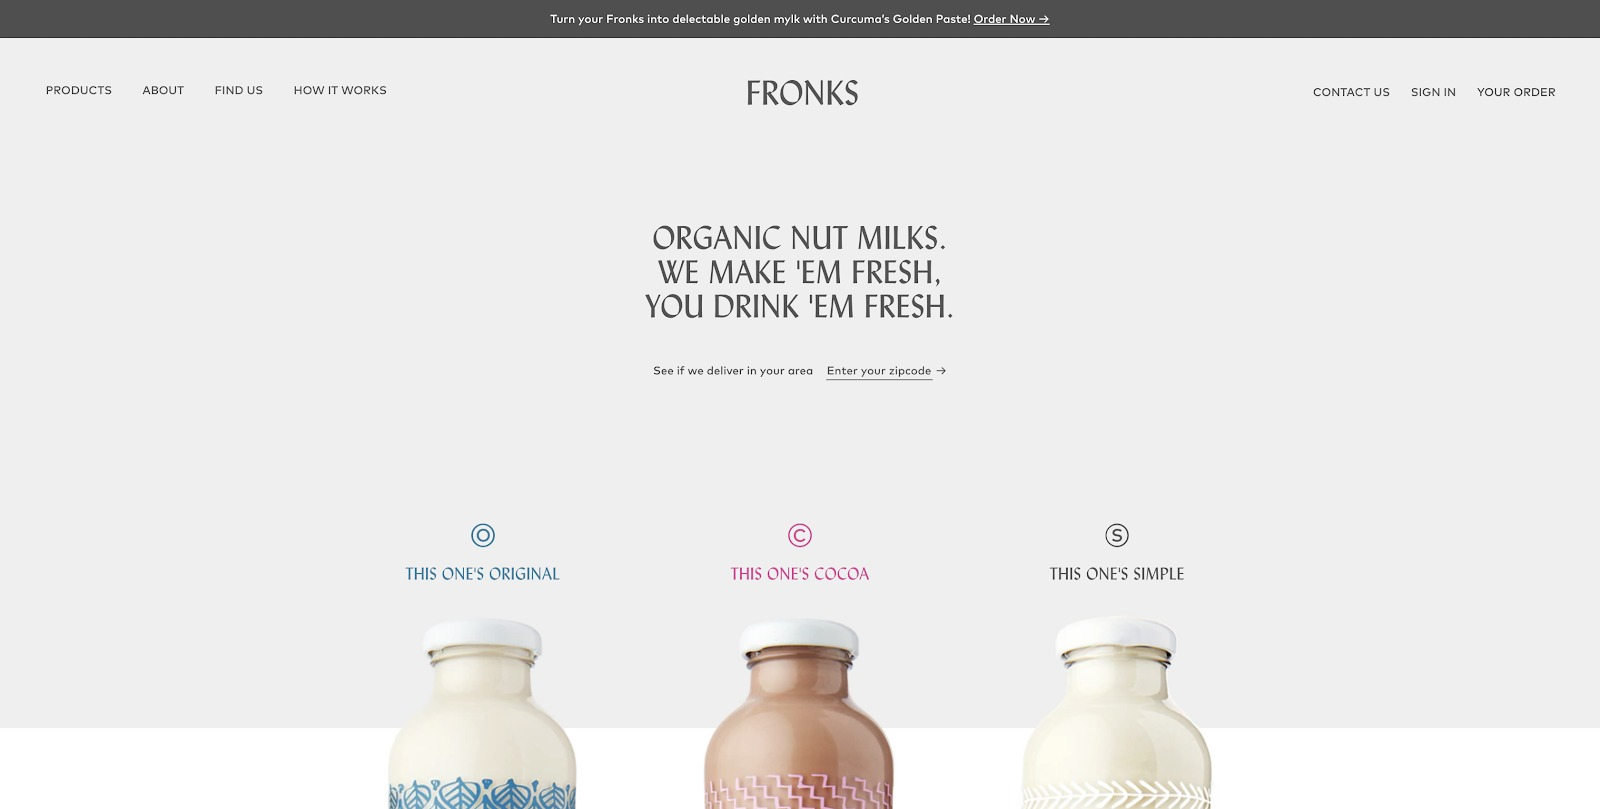 ecommerce design awards FRONKS